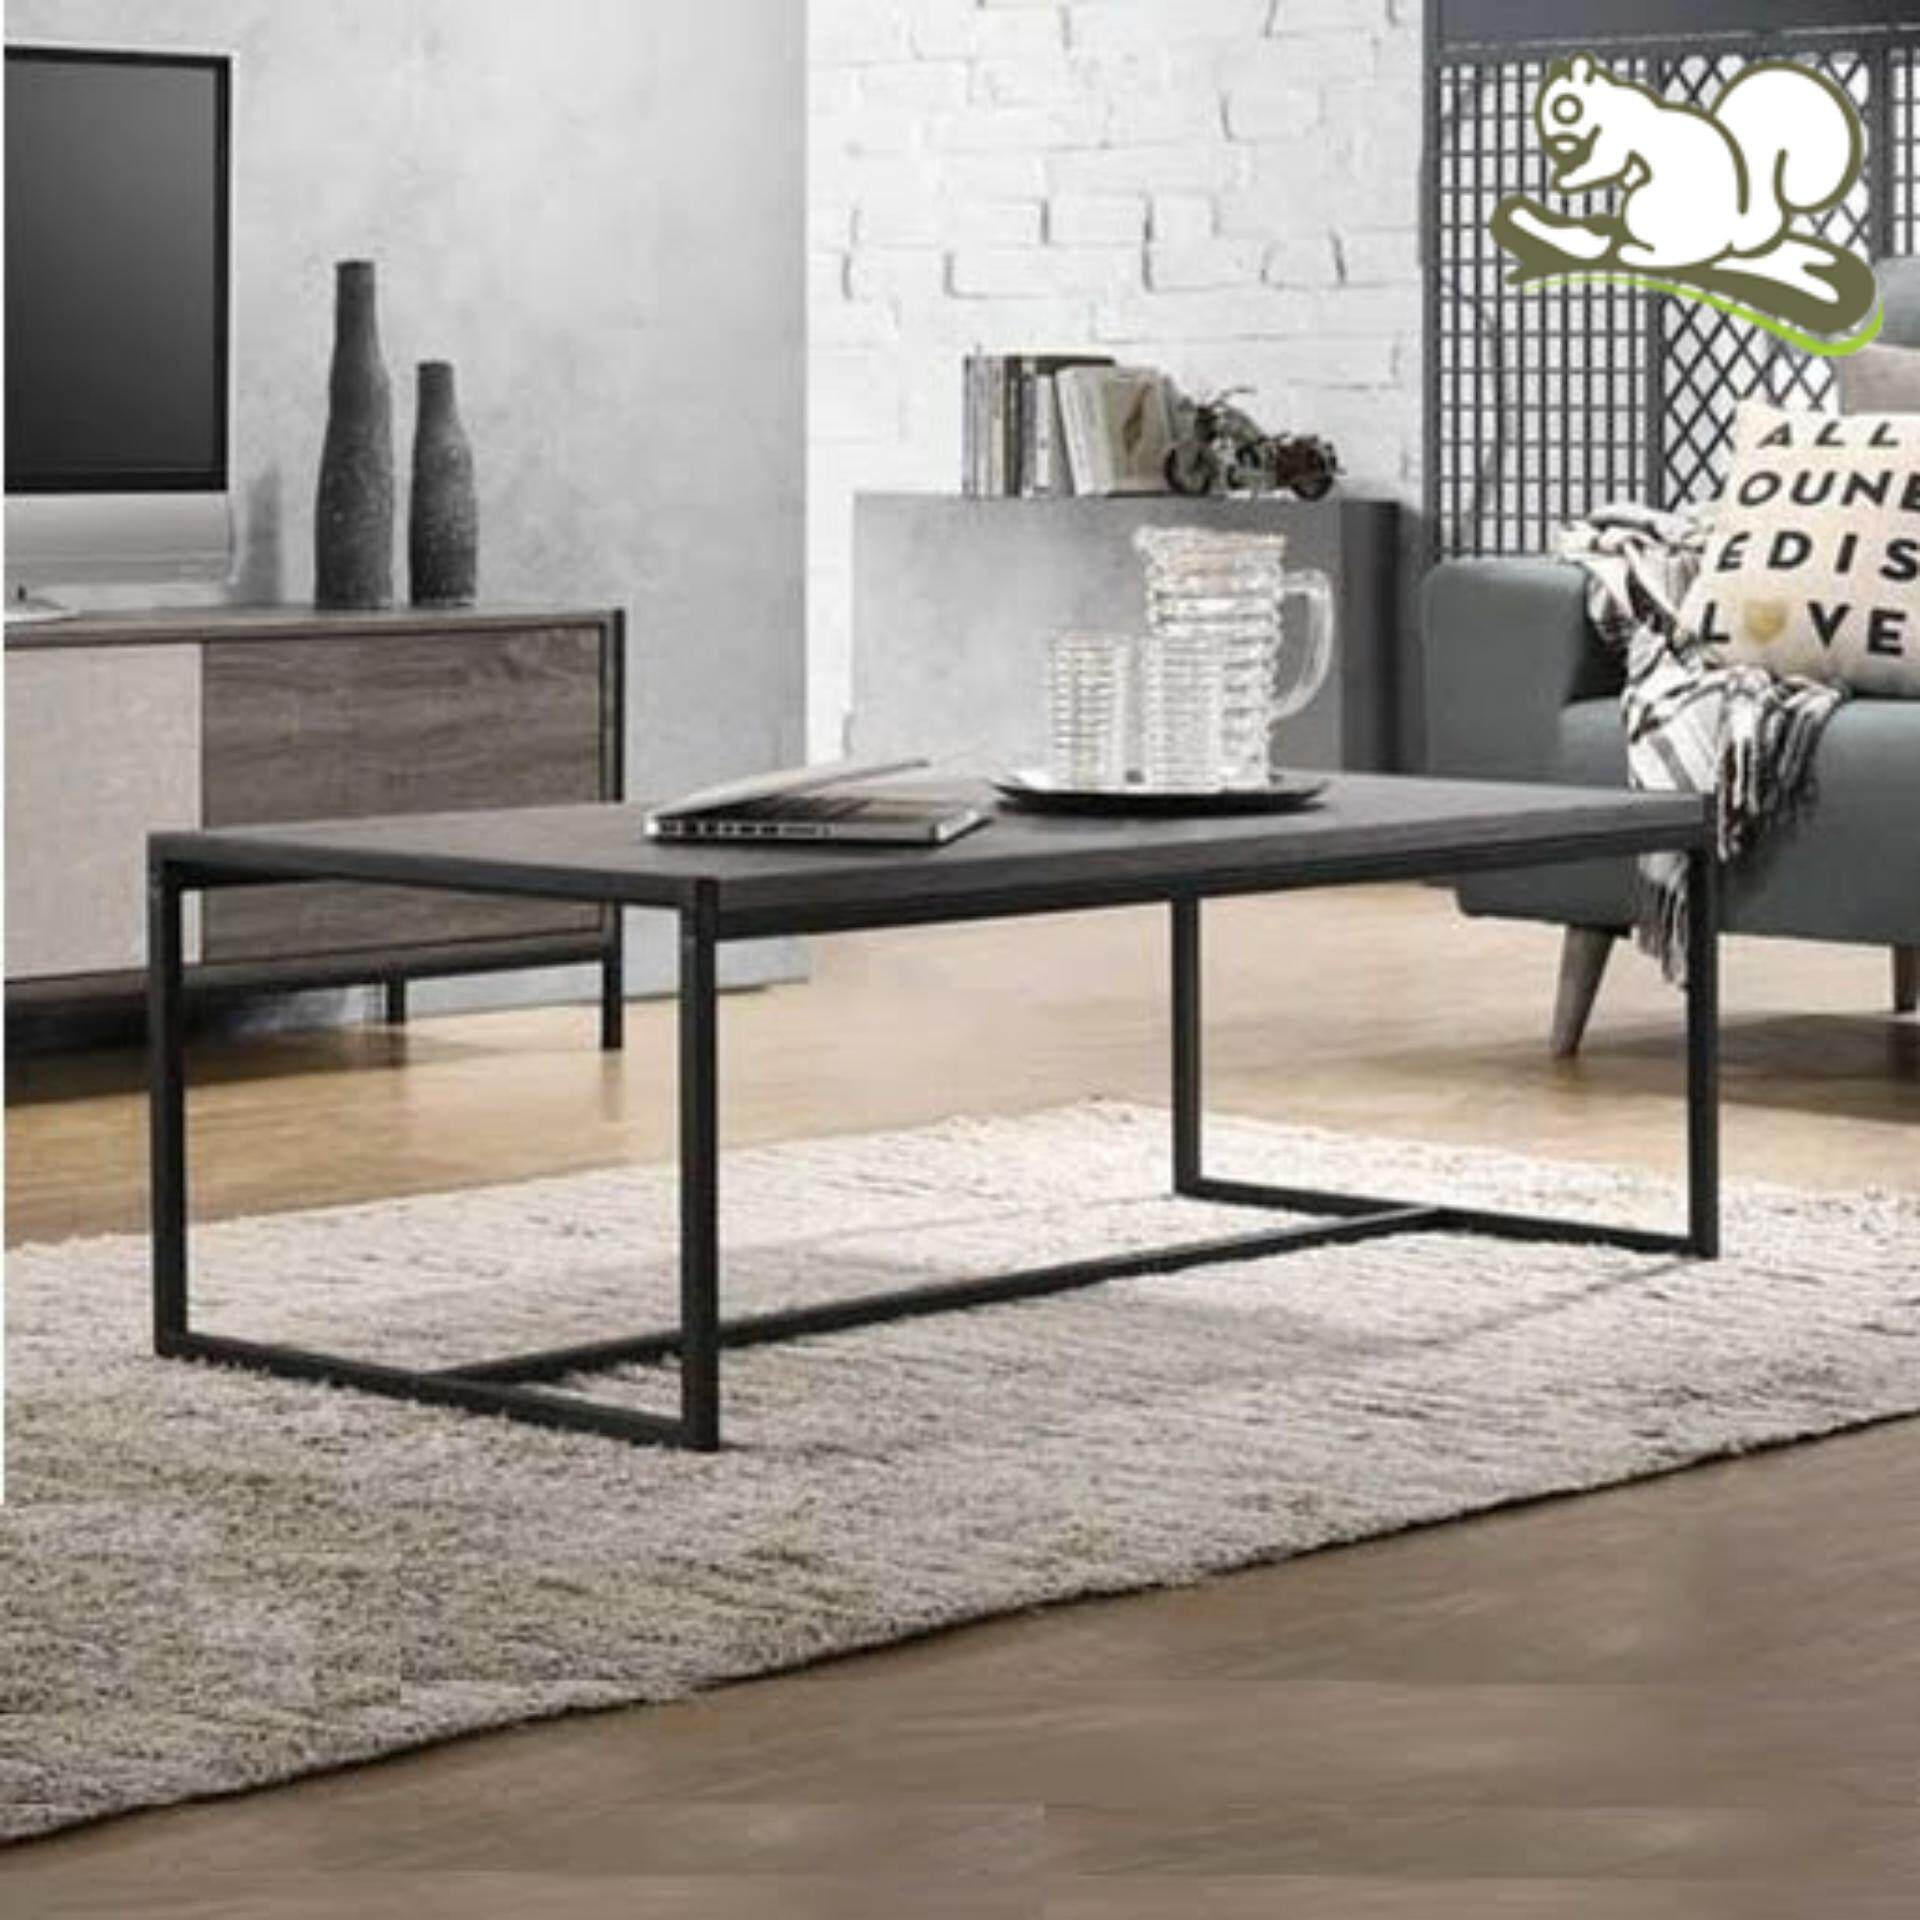 Coffee Table Industrial Style 2x4 By Home Run.